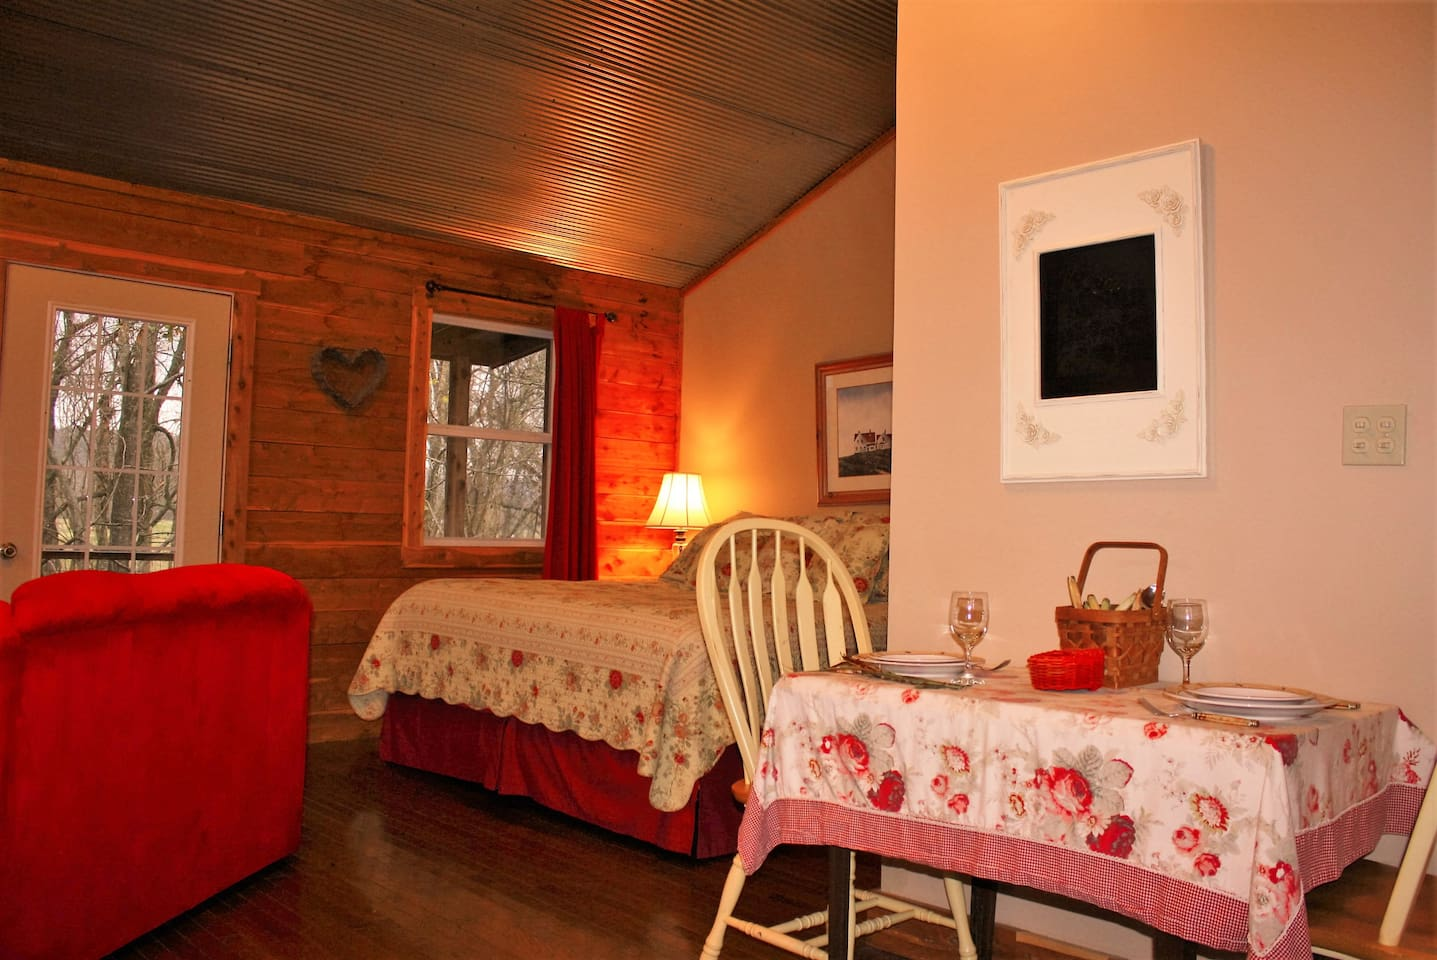 hot arkansas rent tubs pet in and state lodges rentals parks with log cabin friendly sale cabins mena for springs romantic